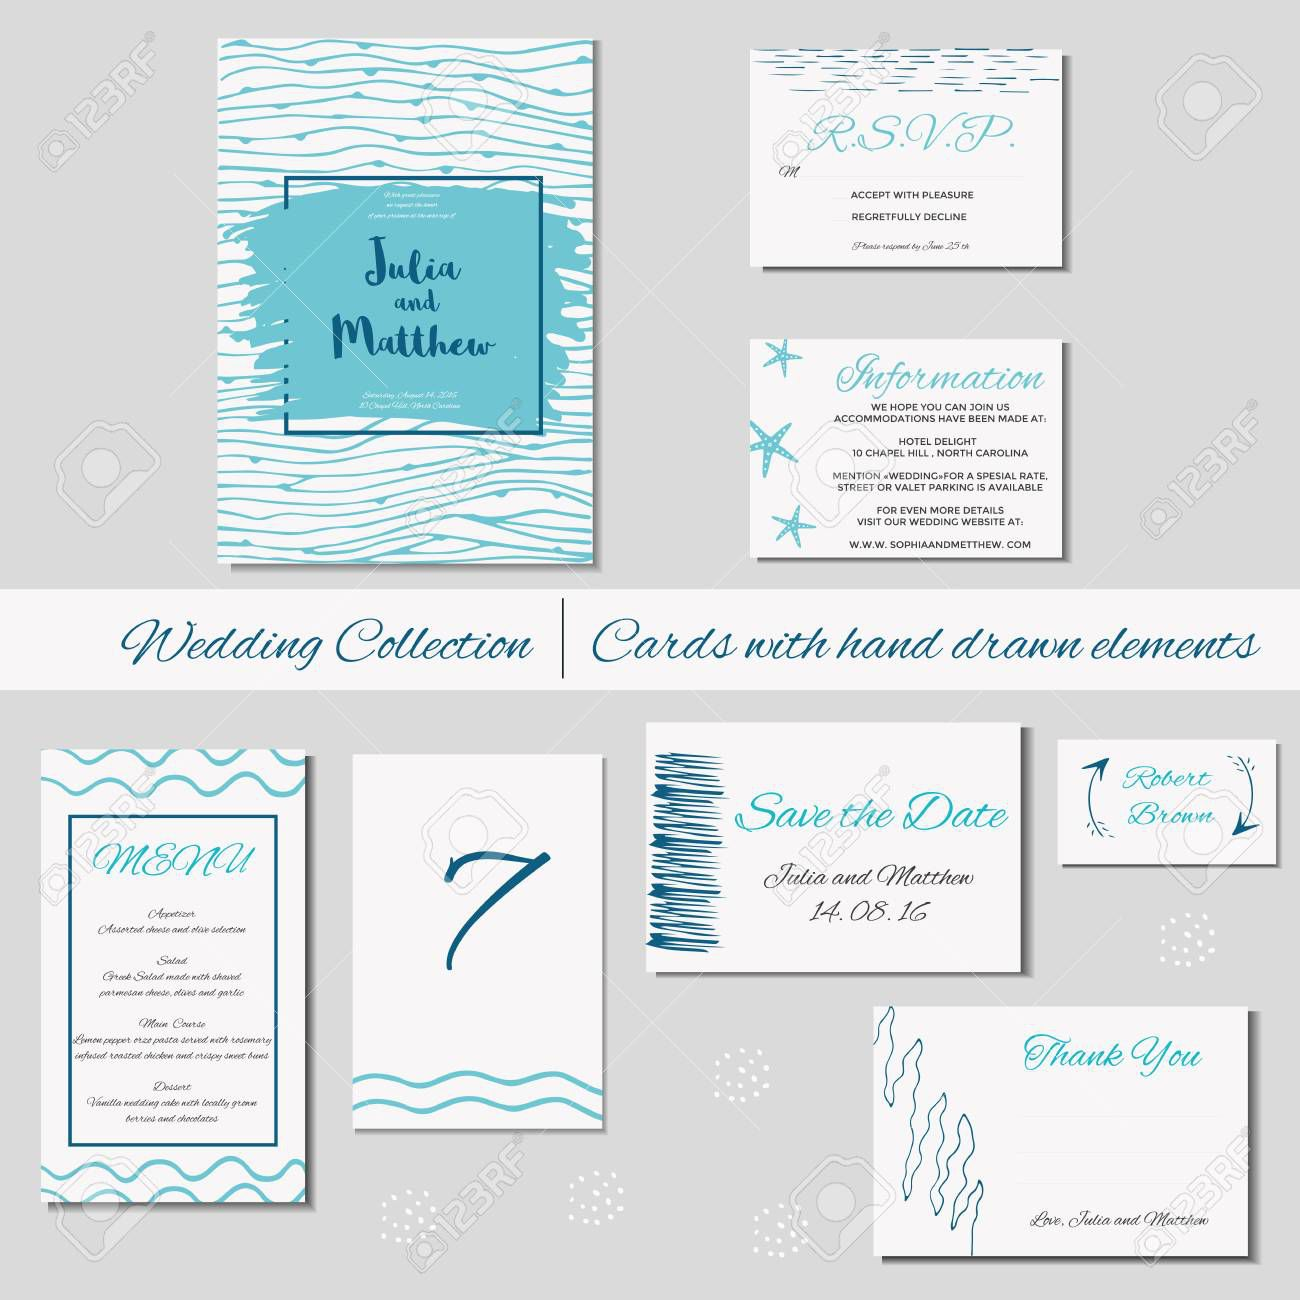 004 Breathtaking Baby Shower Menu Template Example  Templates Lunch Printable DownloadableFull